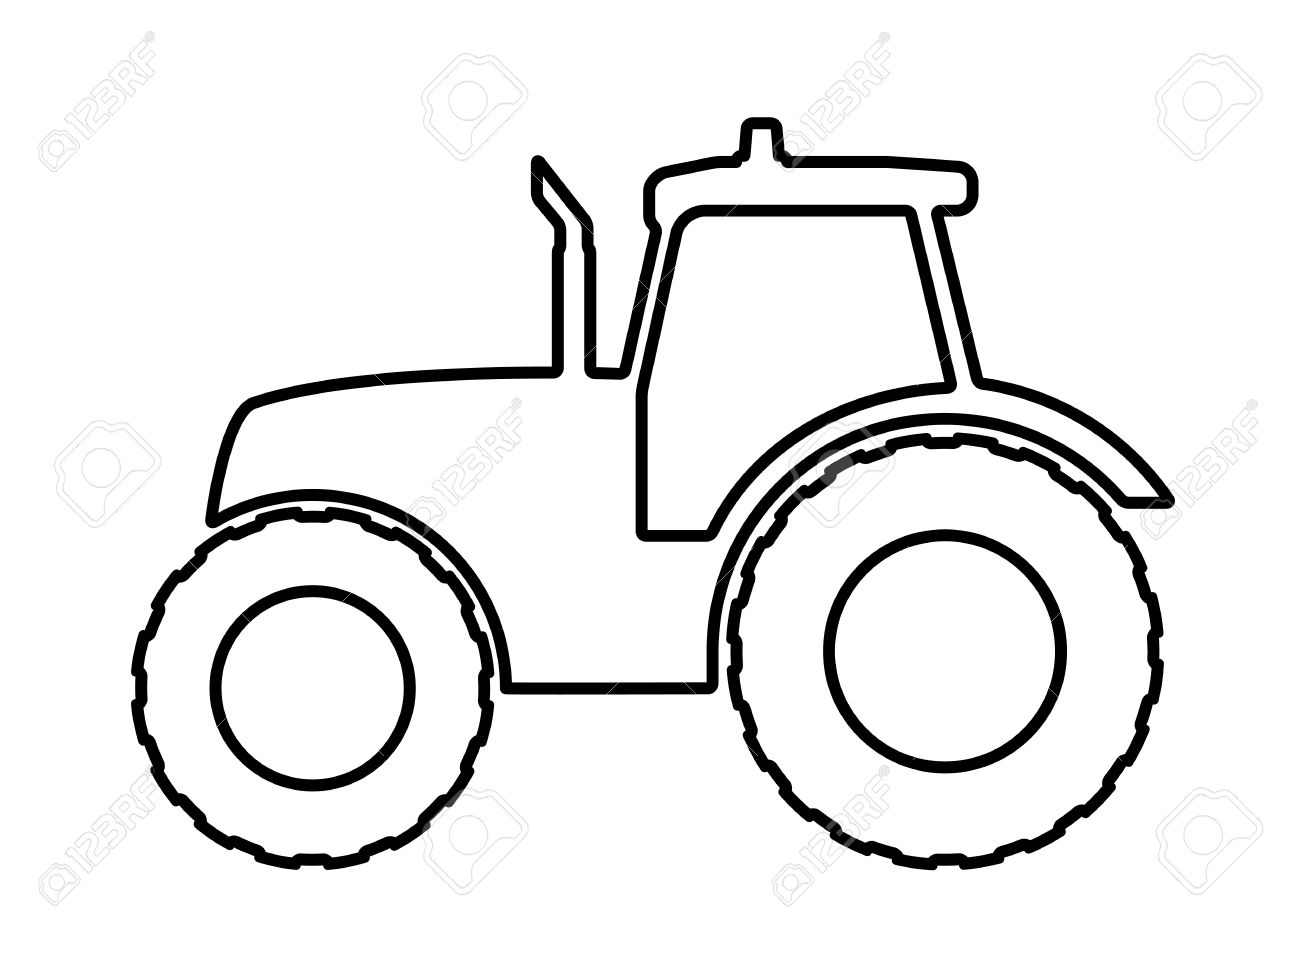 Tractor Drawing Outline At GetDrawings.com